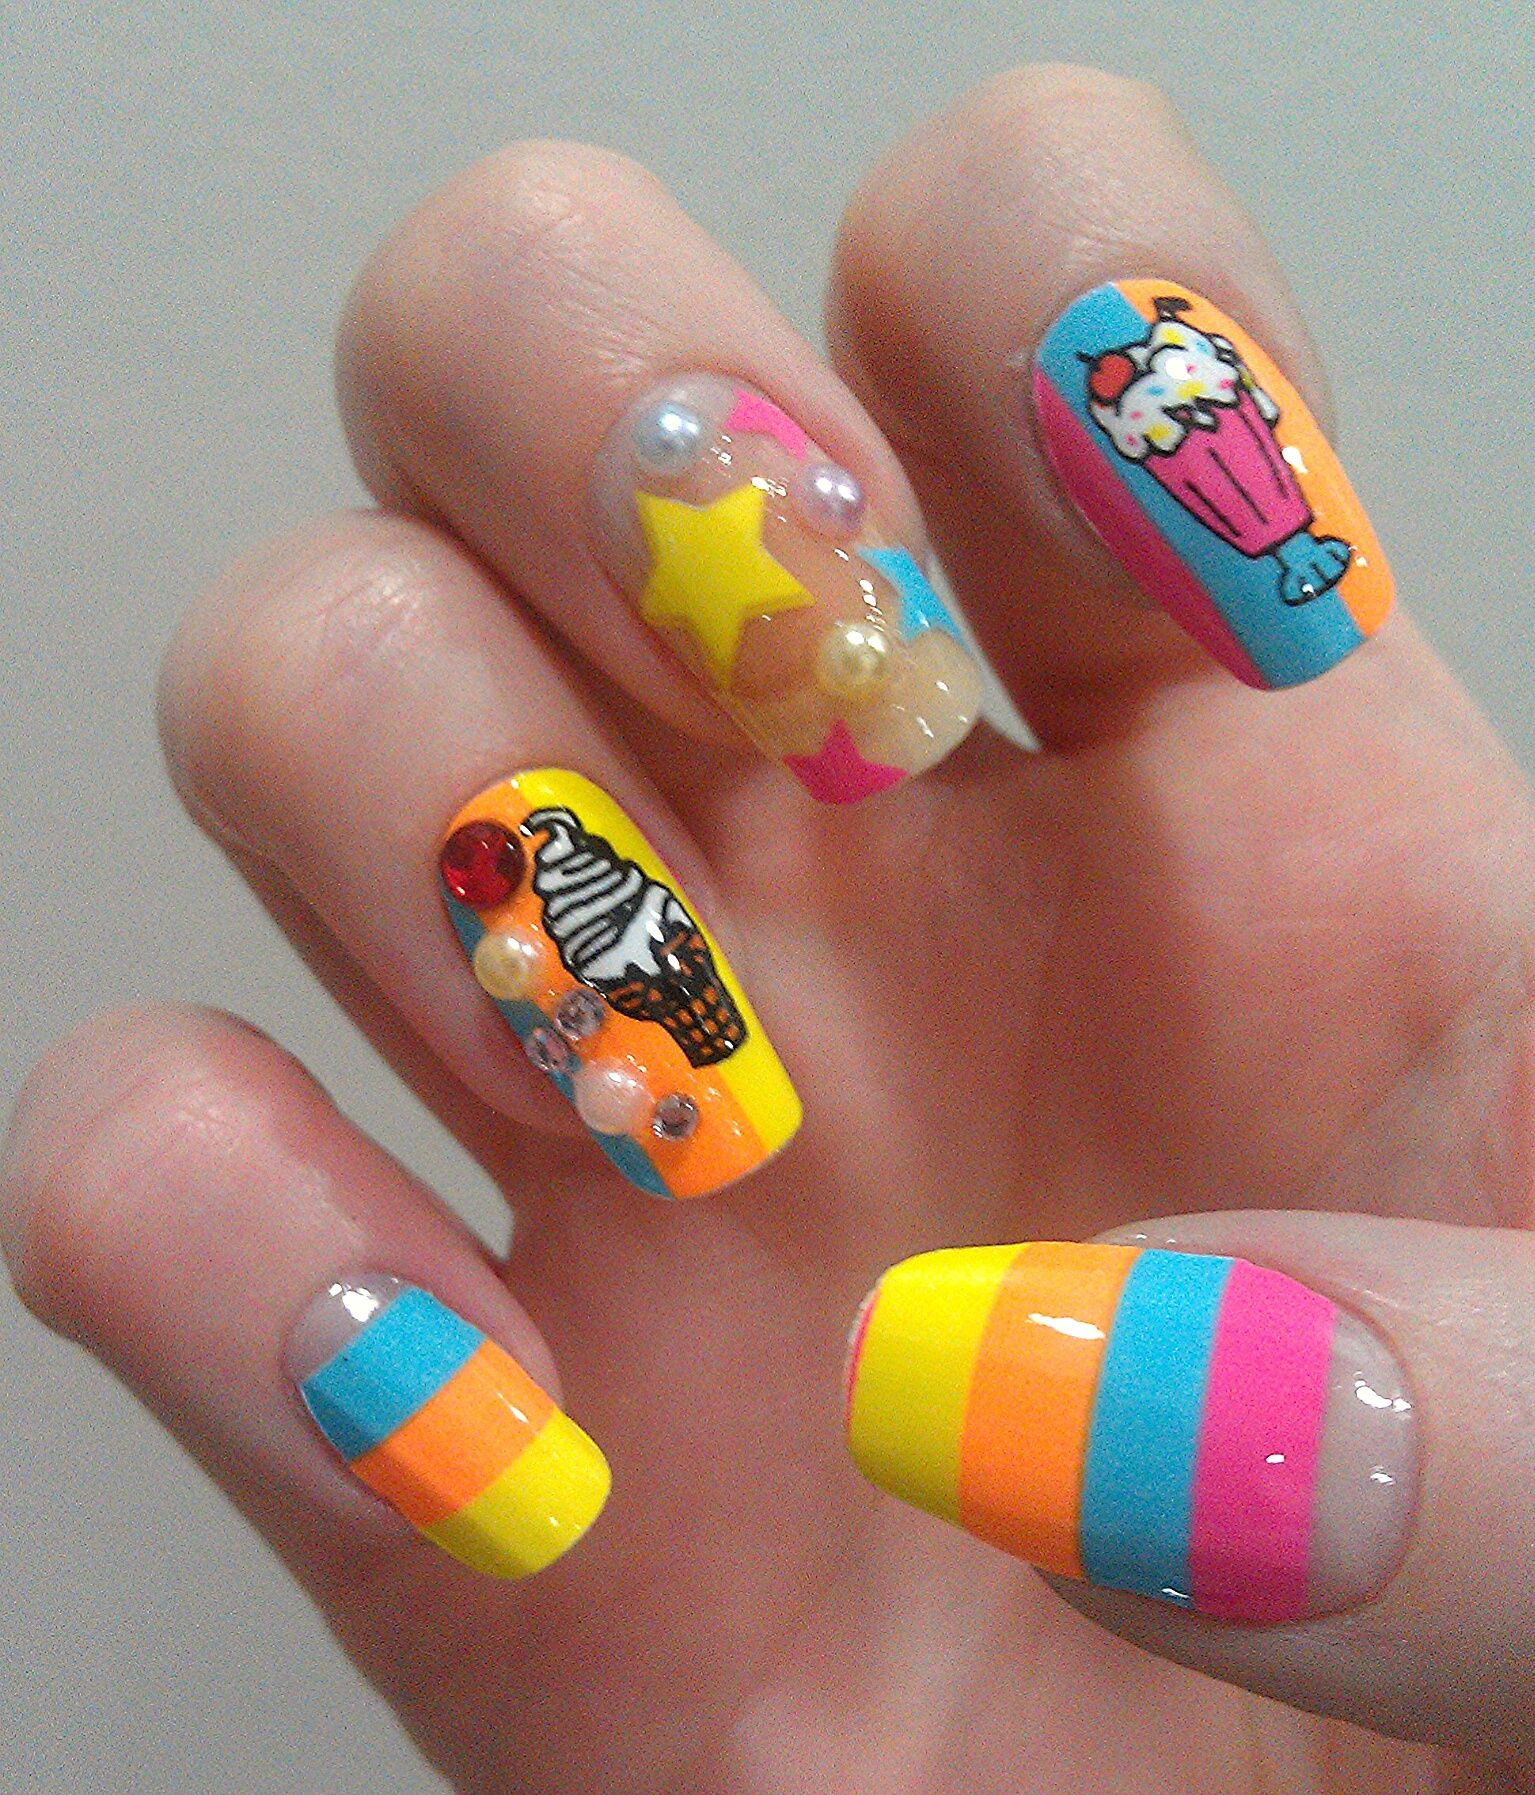 Kawaii food nails | kawaii nail art | Pinterest | Kawaii nail art ...